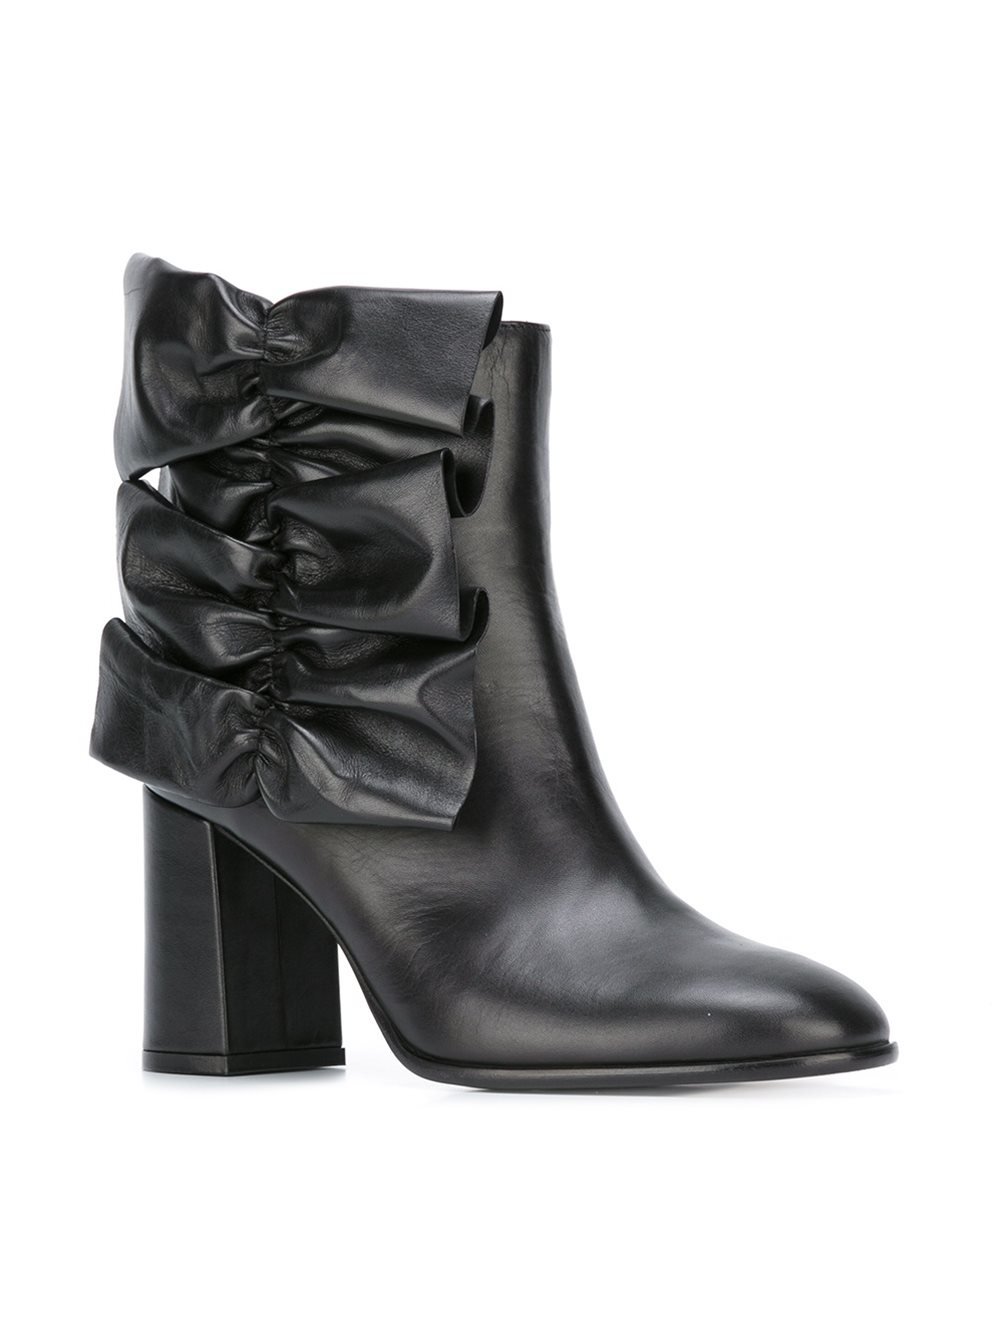 MSGM Gathered Detail Leather Boots in Black (Natural)